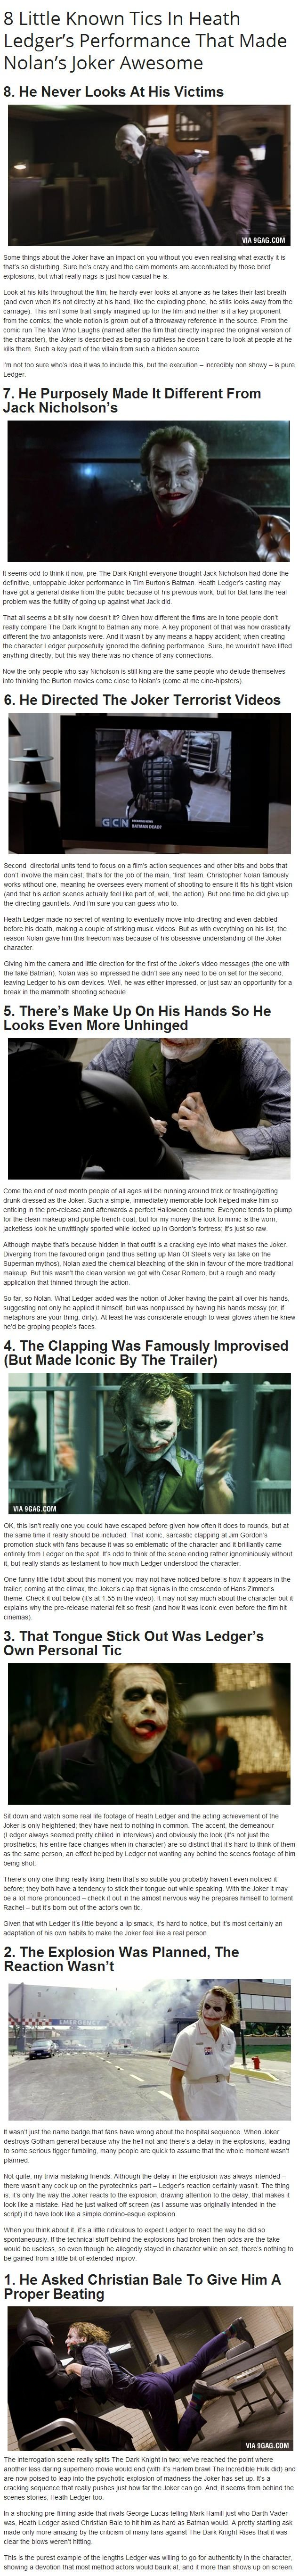 Heath Ledger's The Joker (BTW beautiful danish design in that movie, like the B&O speakers and tv in the picture)